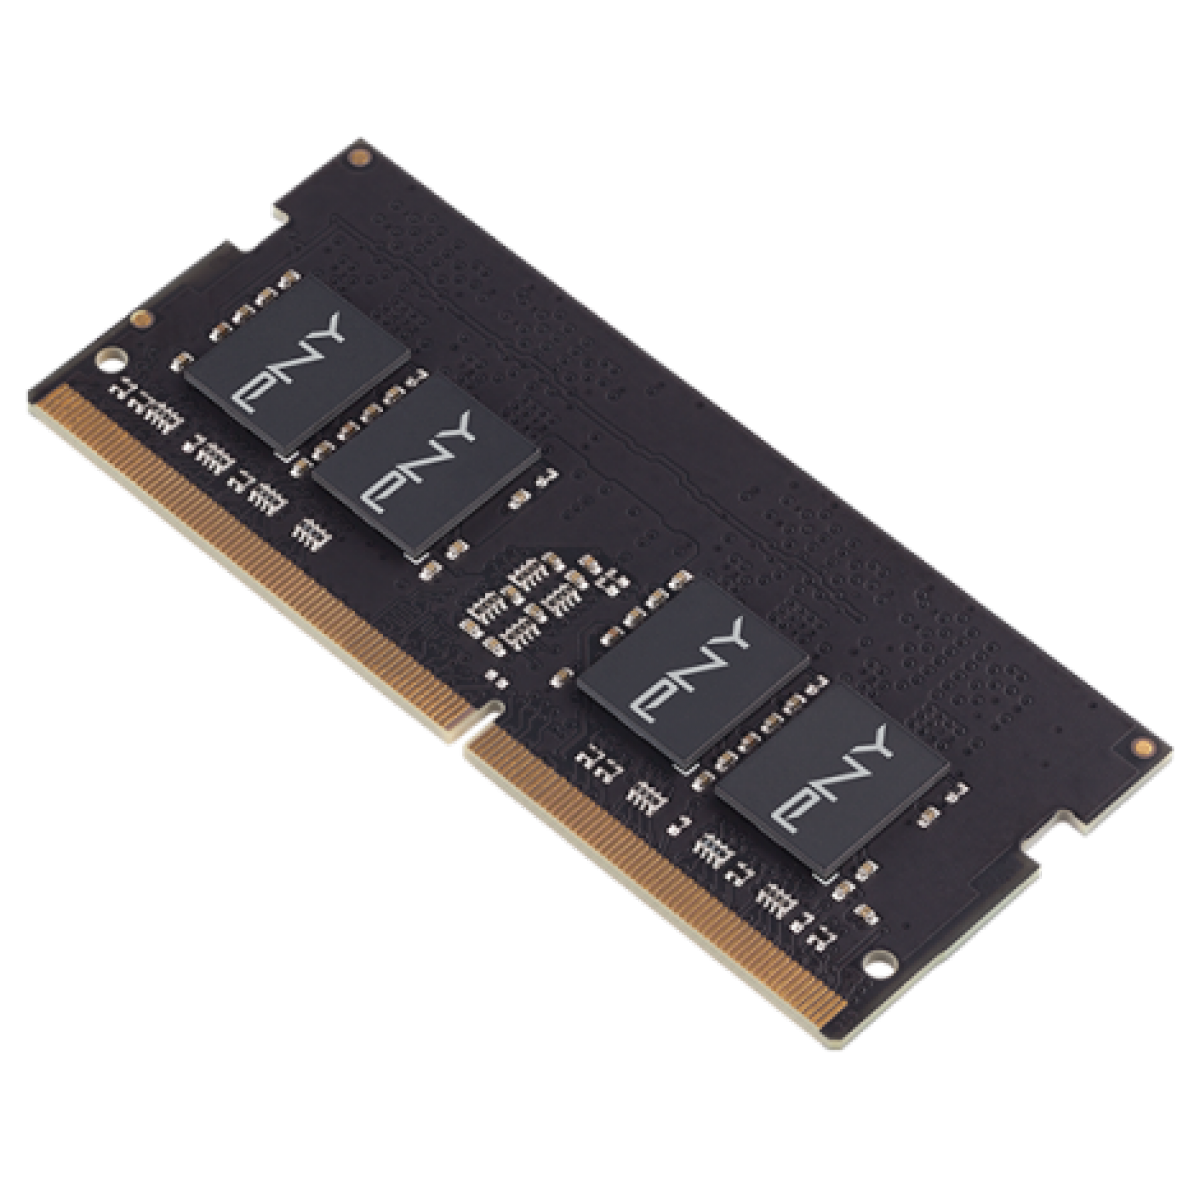 Memória Notebook DDR4 PNY Perfomance, 4GB , 2666MHZ, MN4GSD42666